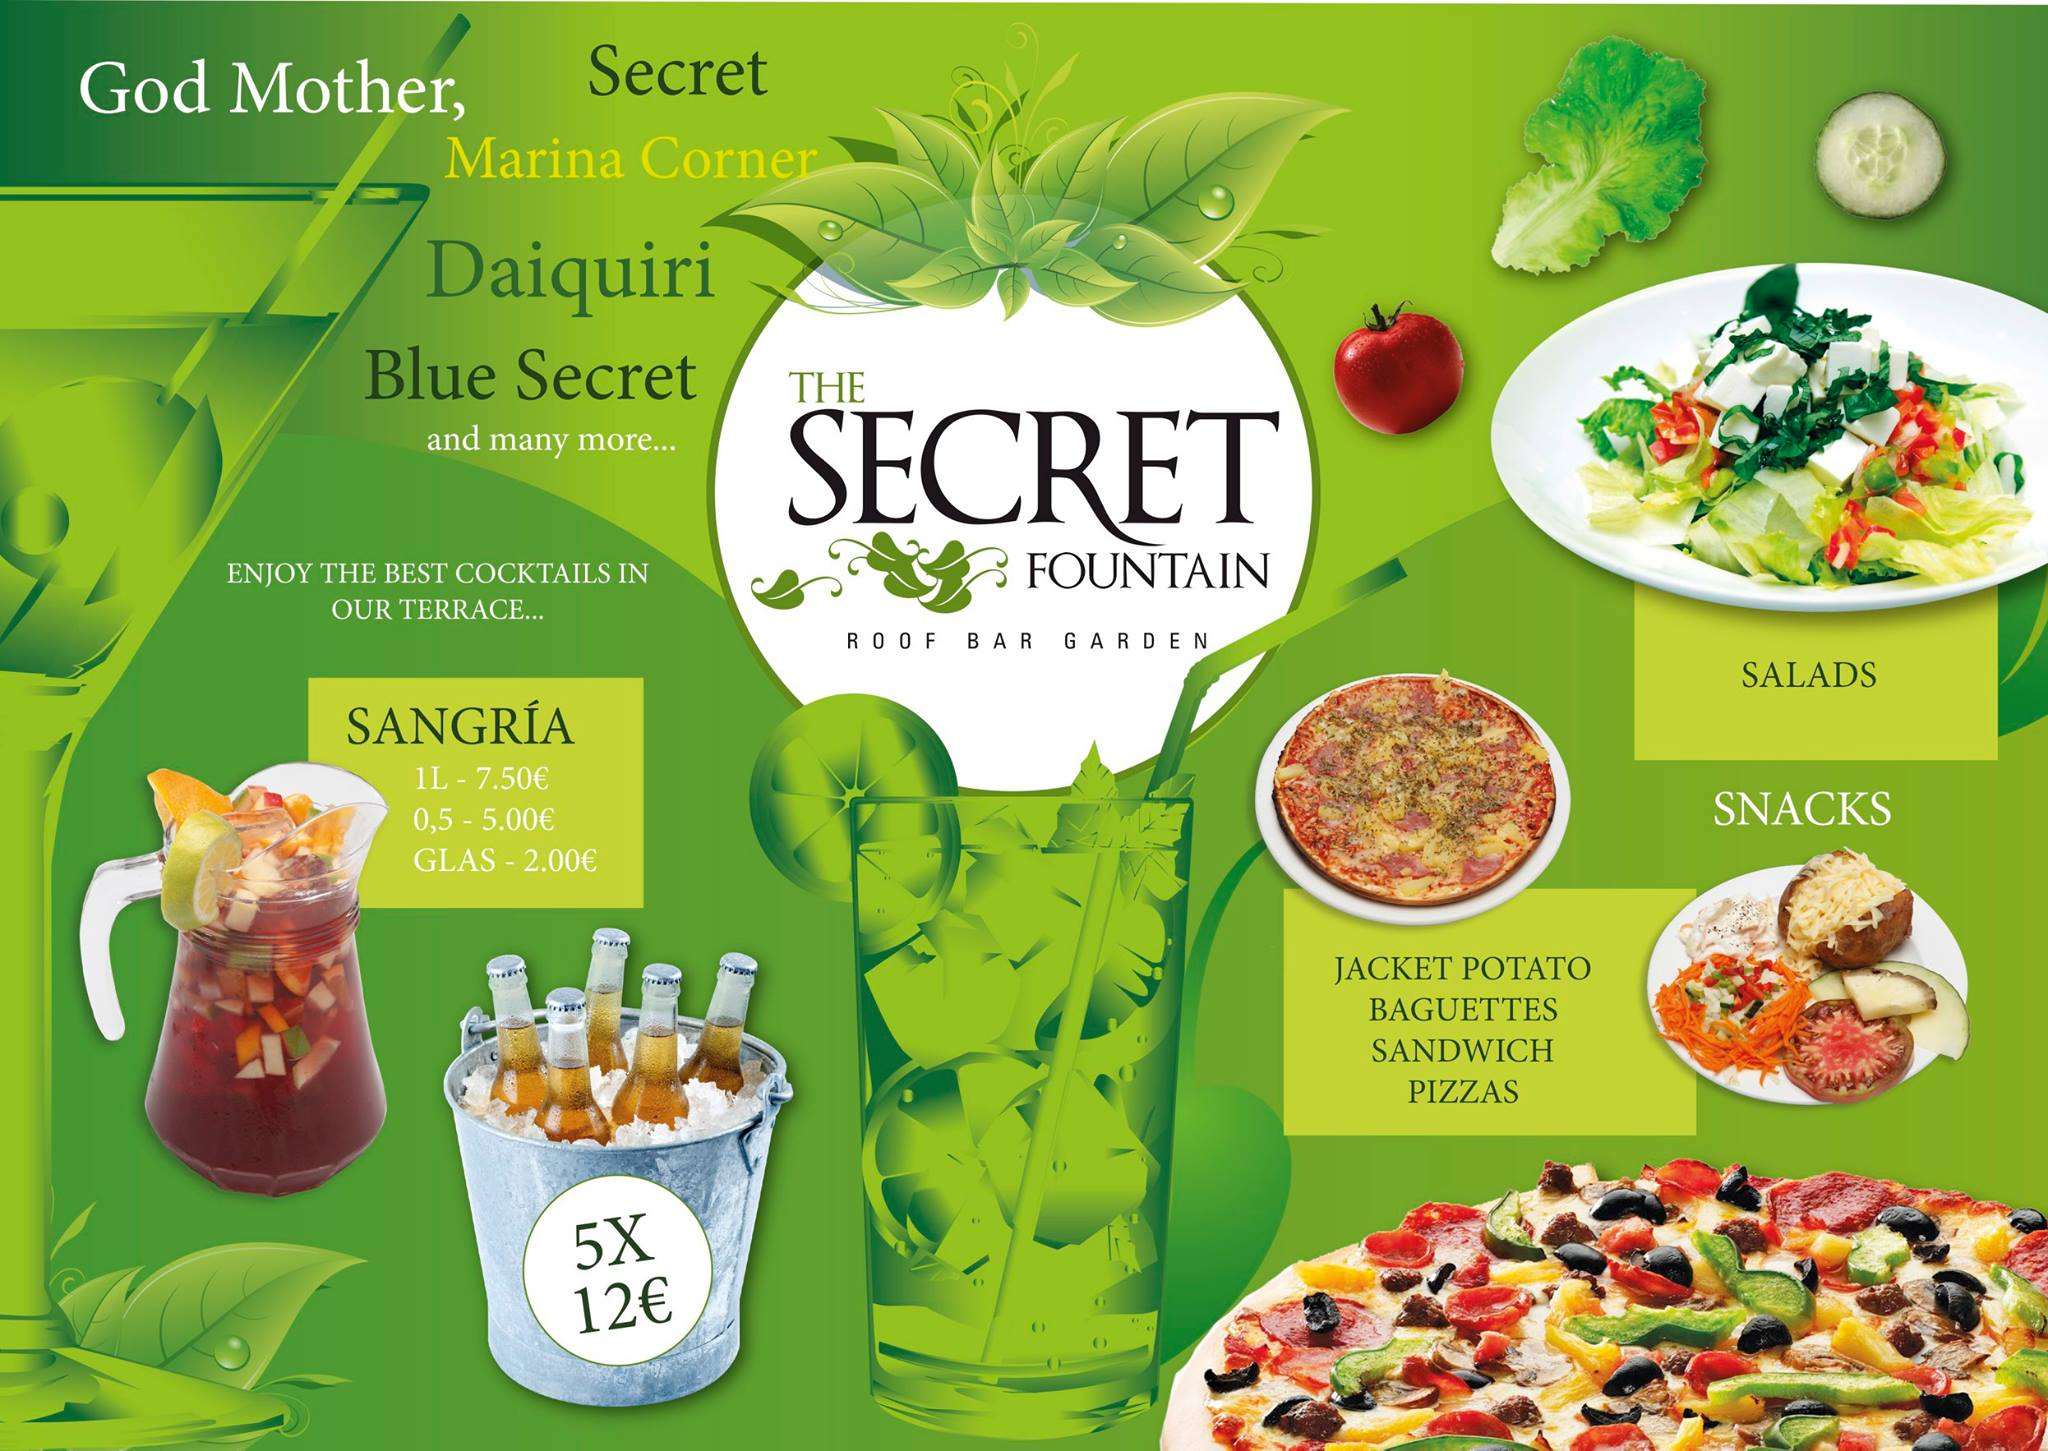 The Secret Fountain drinks food offer